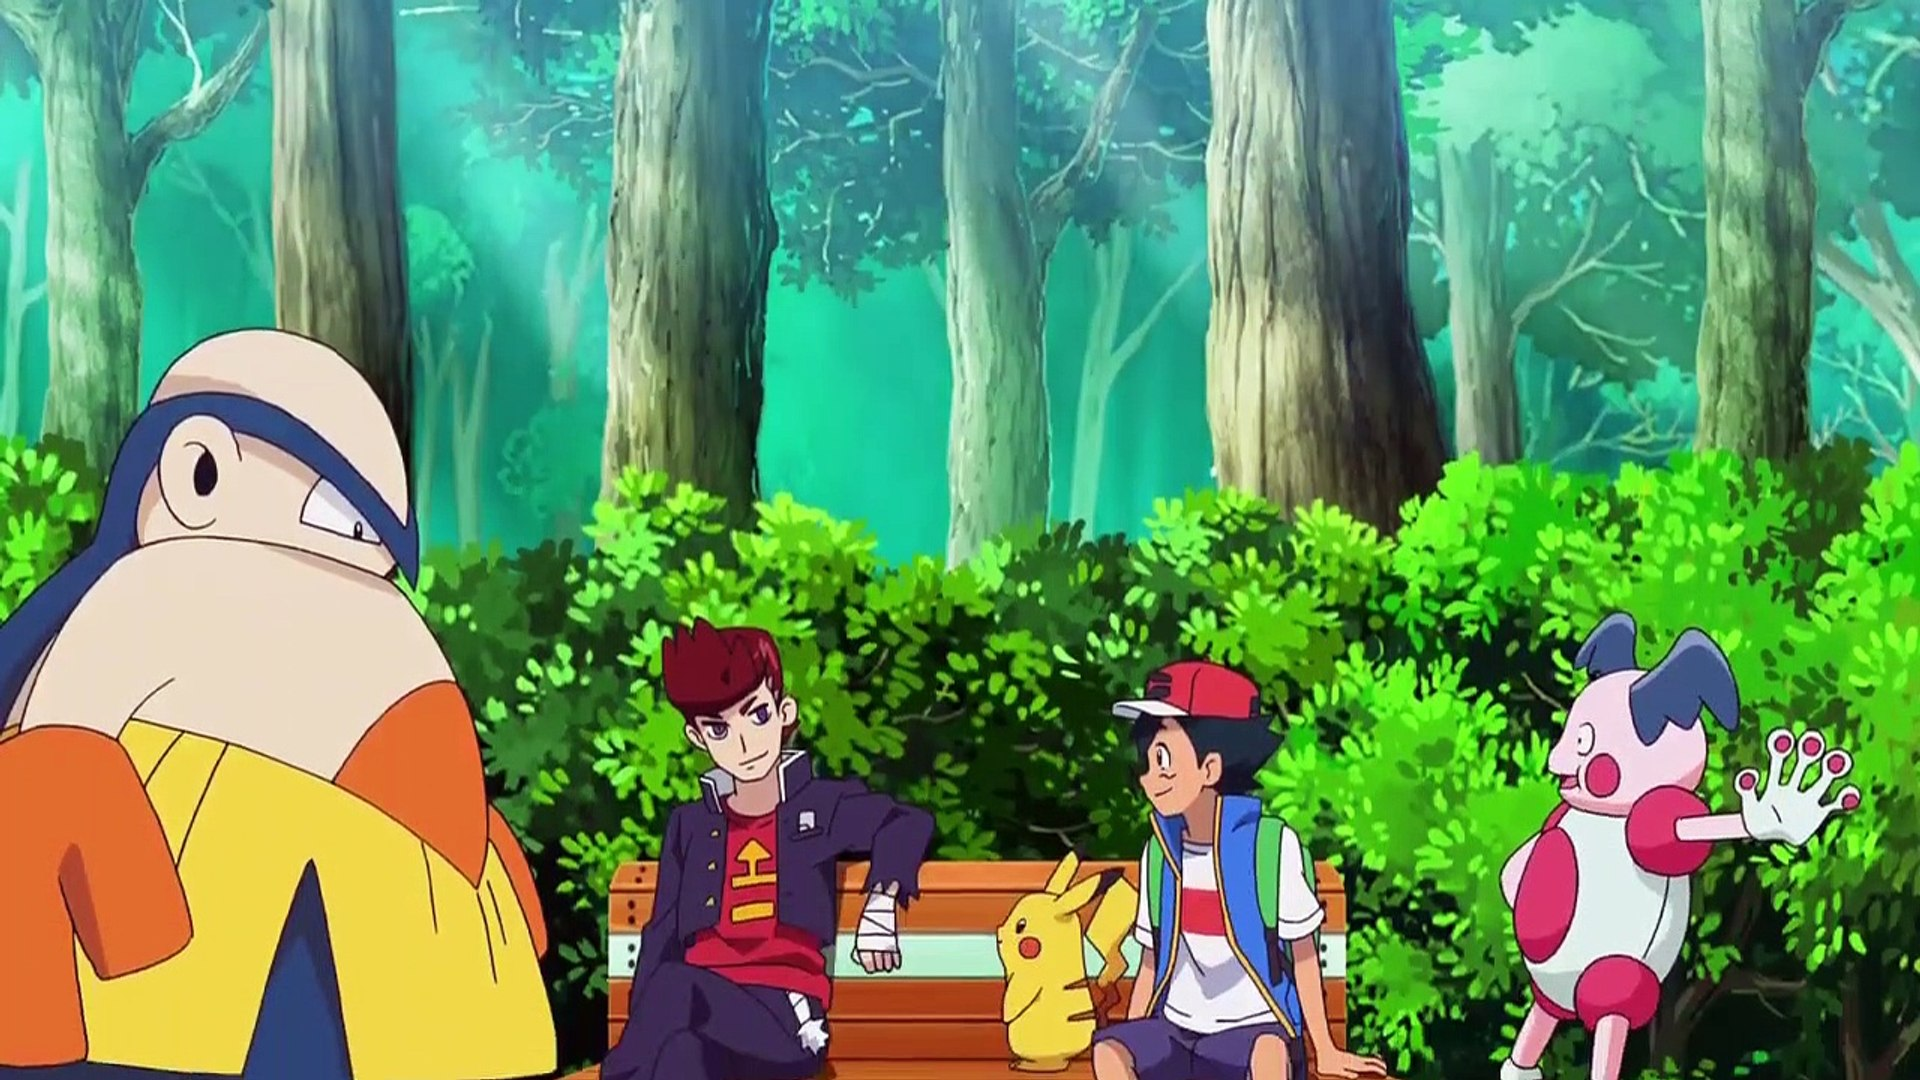 Pokemon sword and shield episode 7 English sub | Pokemon 2019 | Pokemon  Season 23 | Pokemon galarregion | Pokemon monsters | Pokemon the journey -  video Dailymotion